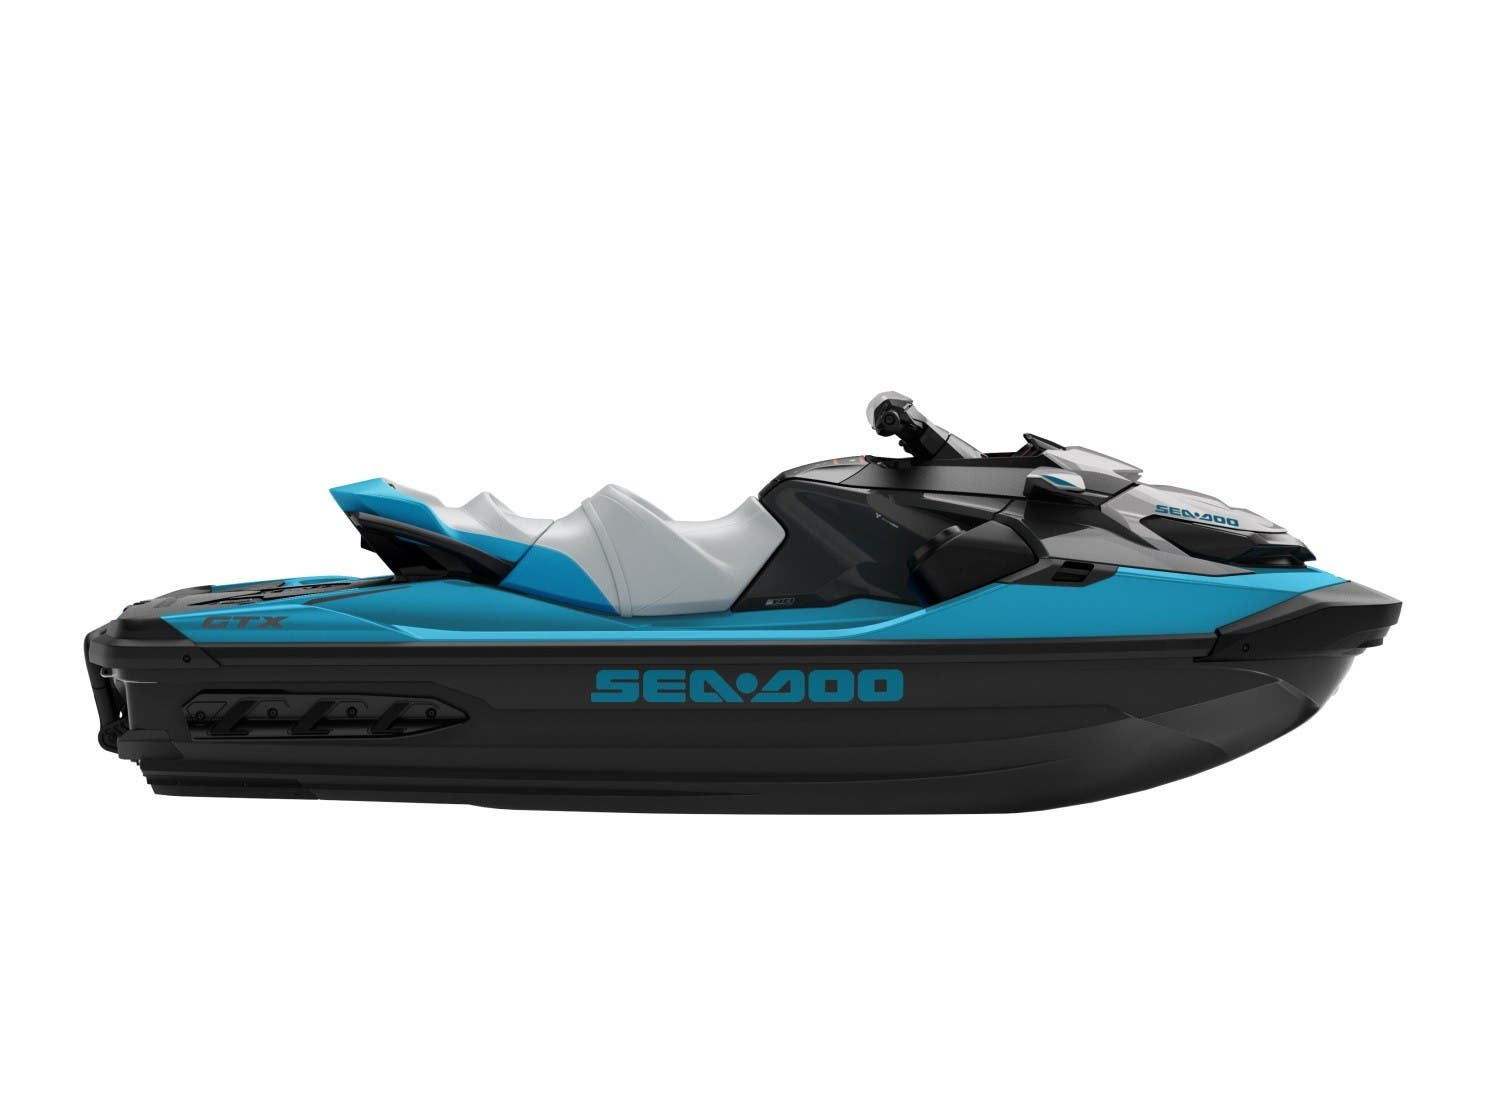 2021 Sea Doo PWC boat for sale, model of the boat is GTX 170 SS & Image # 4 of 4